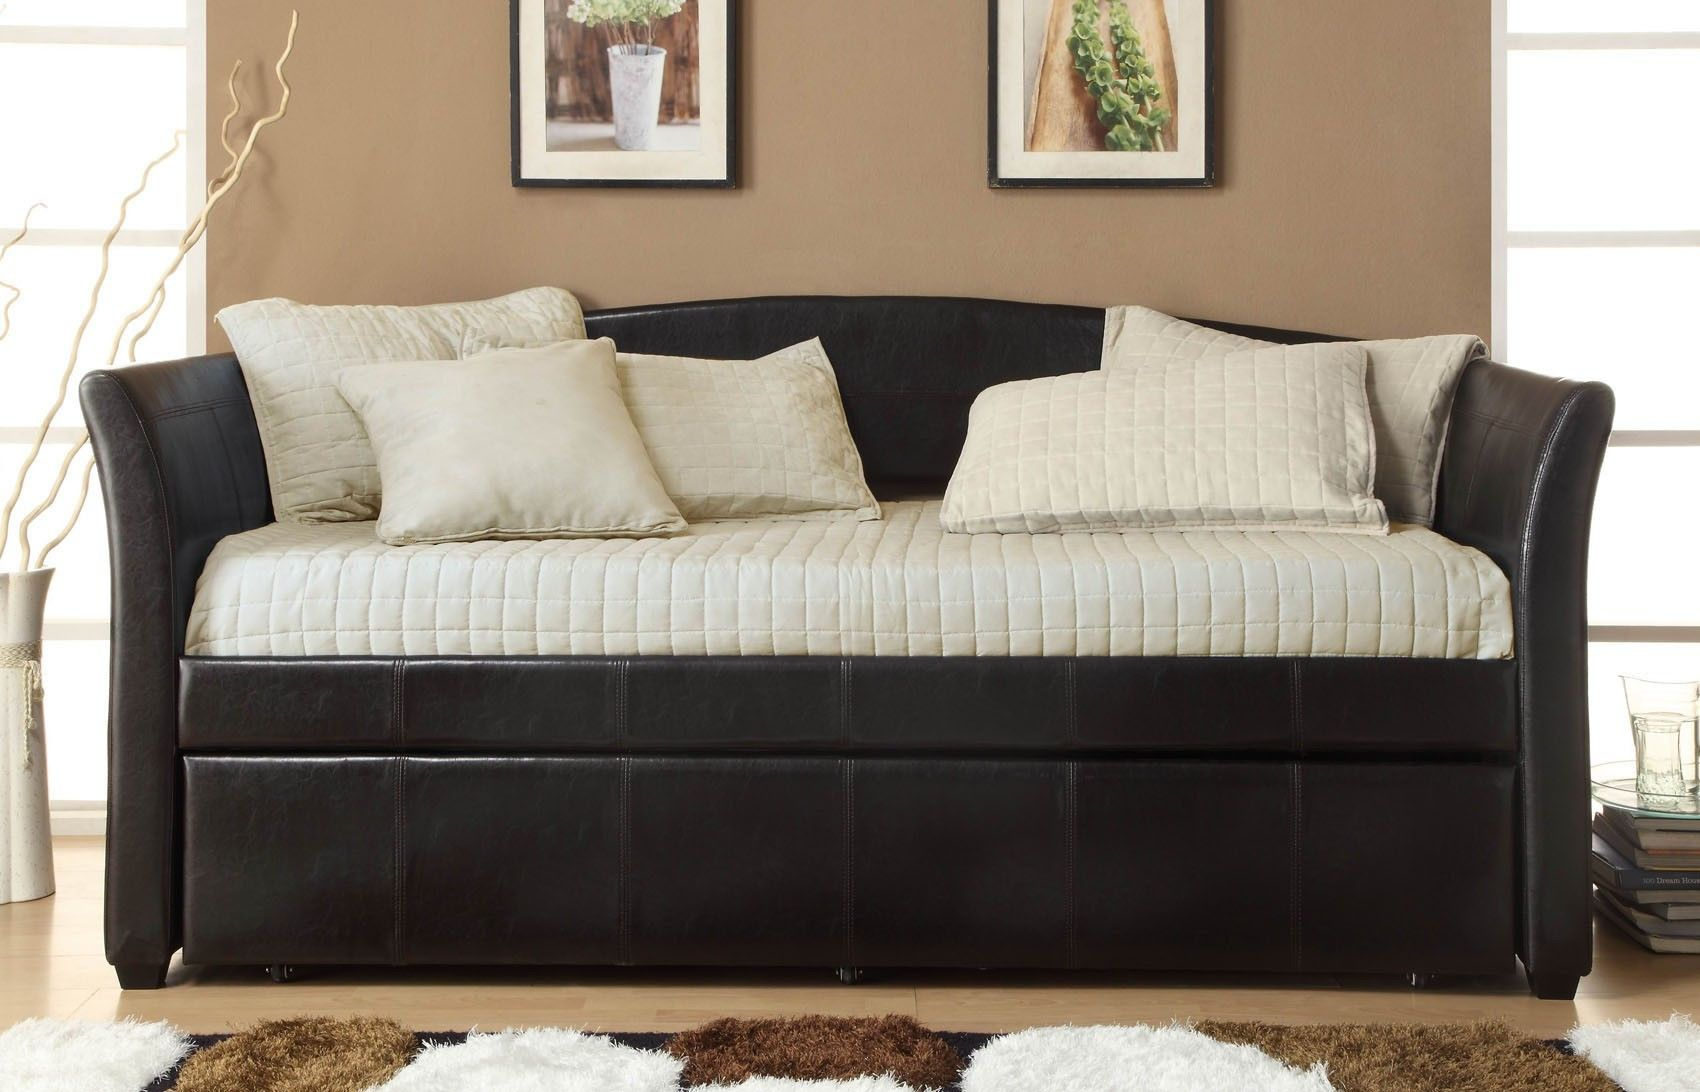 stylish sofa bed with trundle photo-Beautiful sofa Bed with Trundle Collection